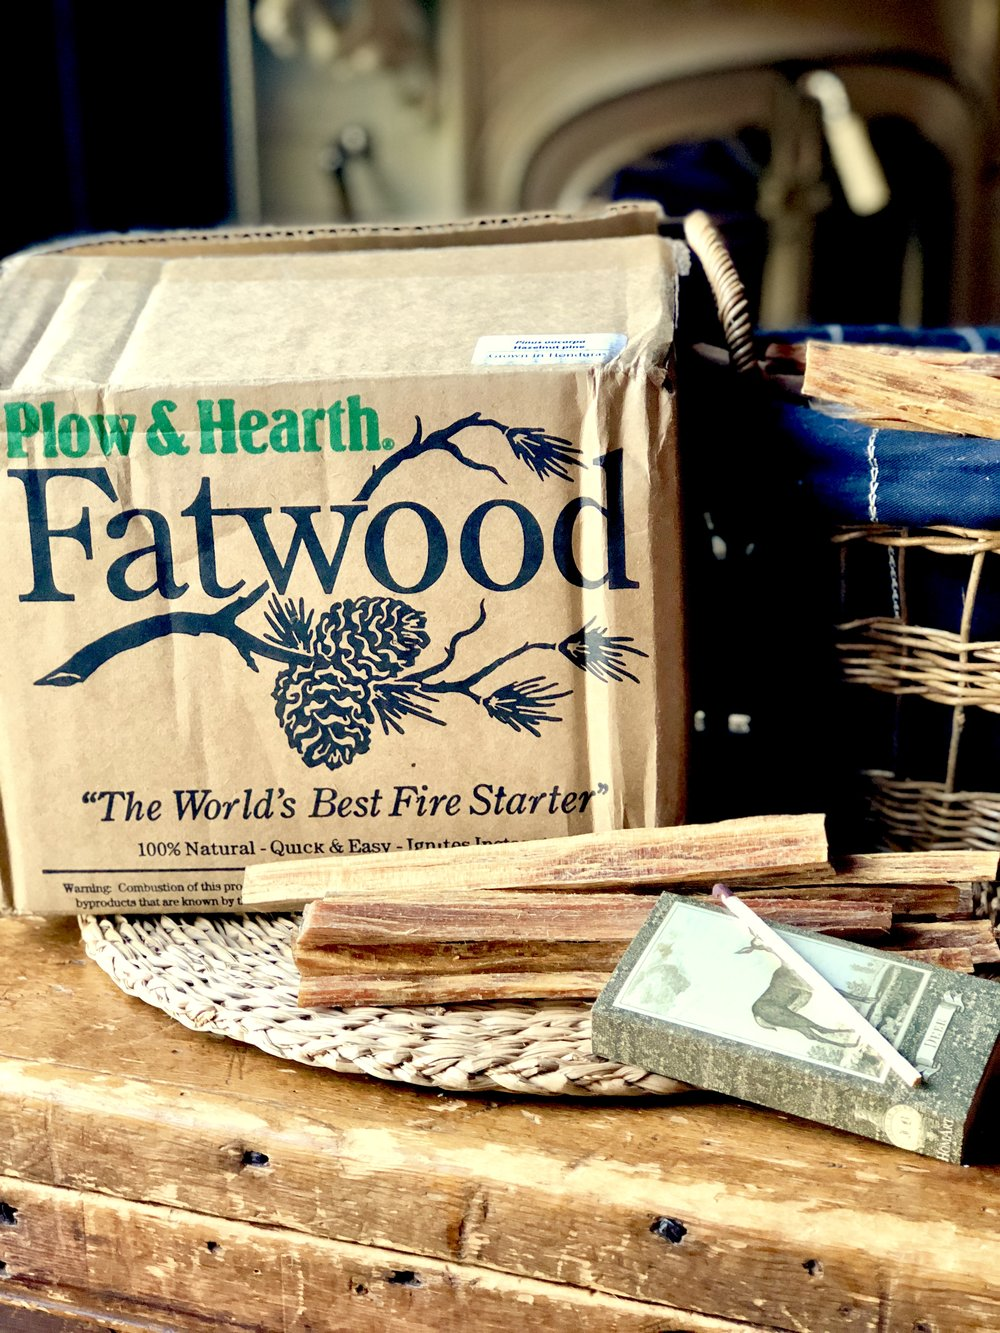 Some know the fall season is upon them when the leaves start turning. For me, it is when our boxes of  Fatwood  form Plow & Hearth arrive at our front door.